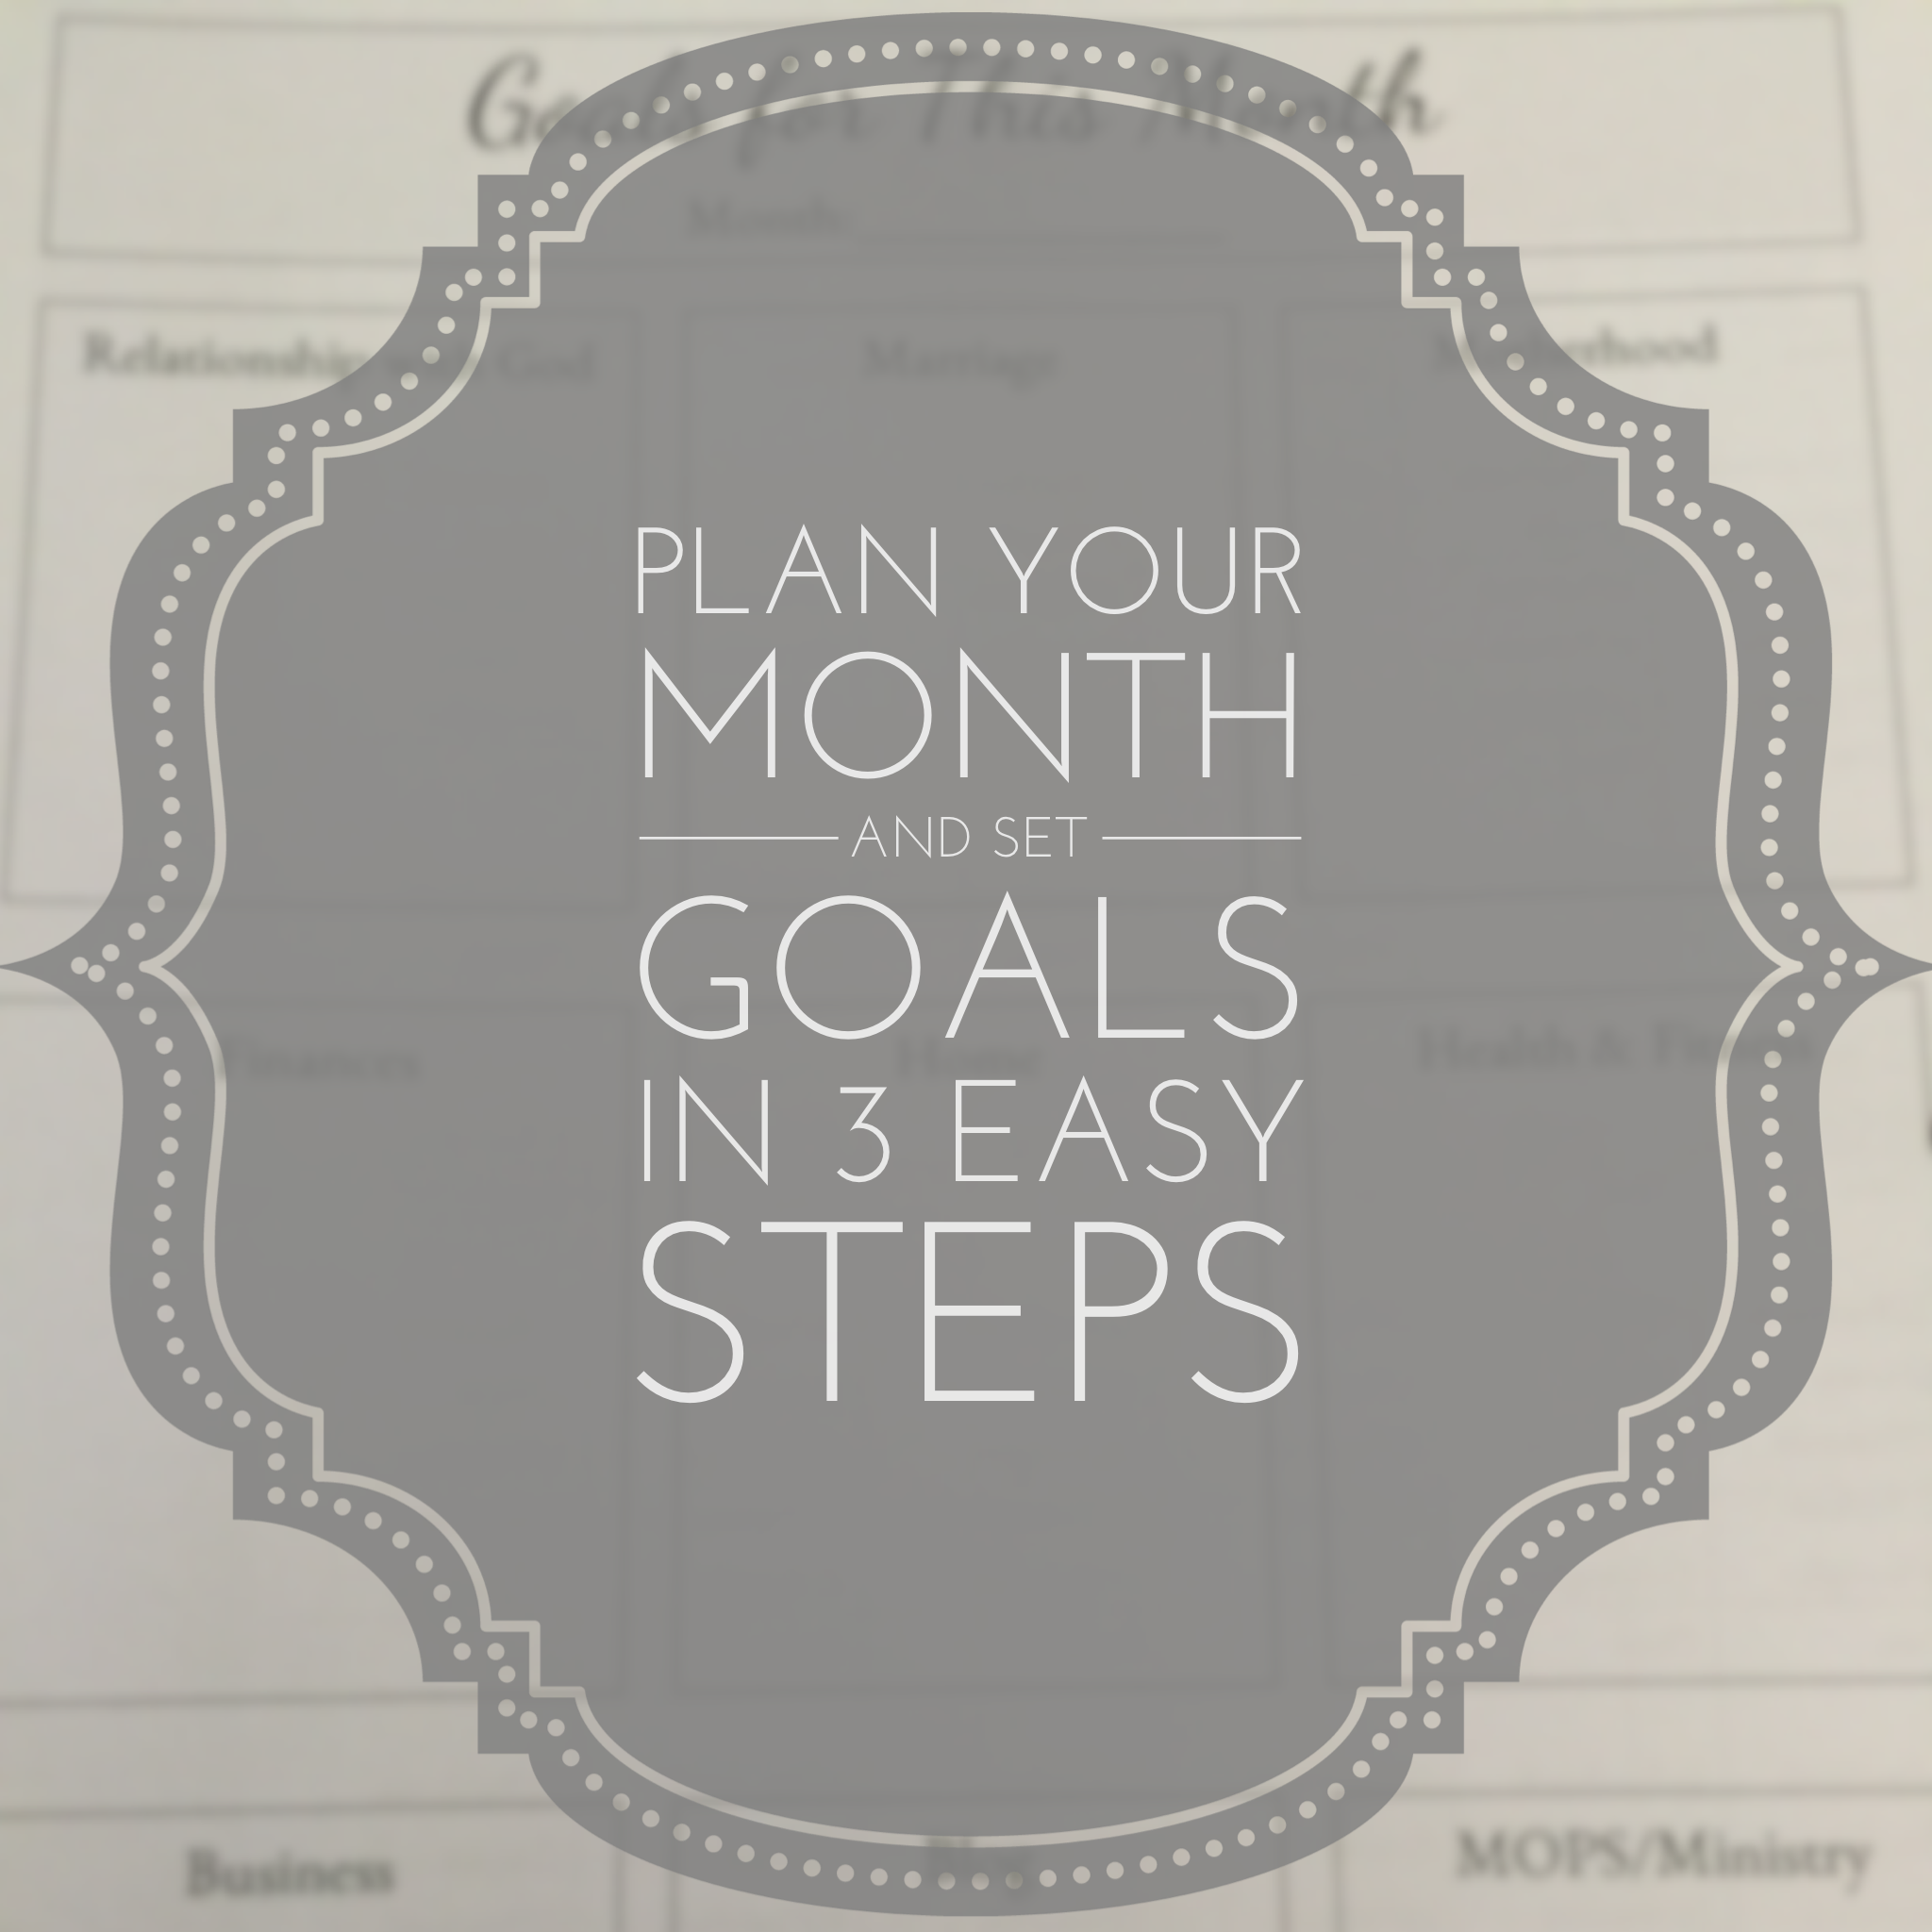 Monthly Planning and Goal Setting in 3 Easy Steps